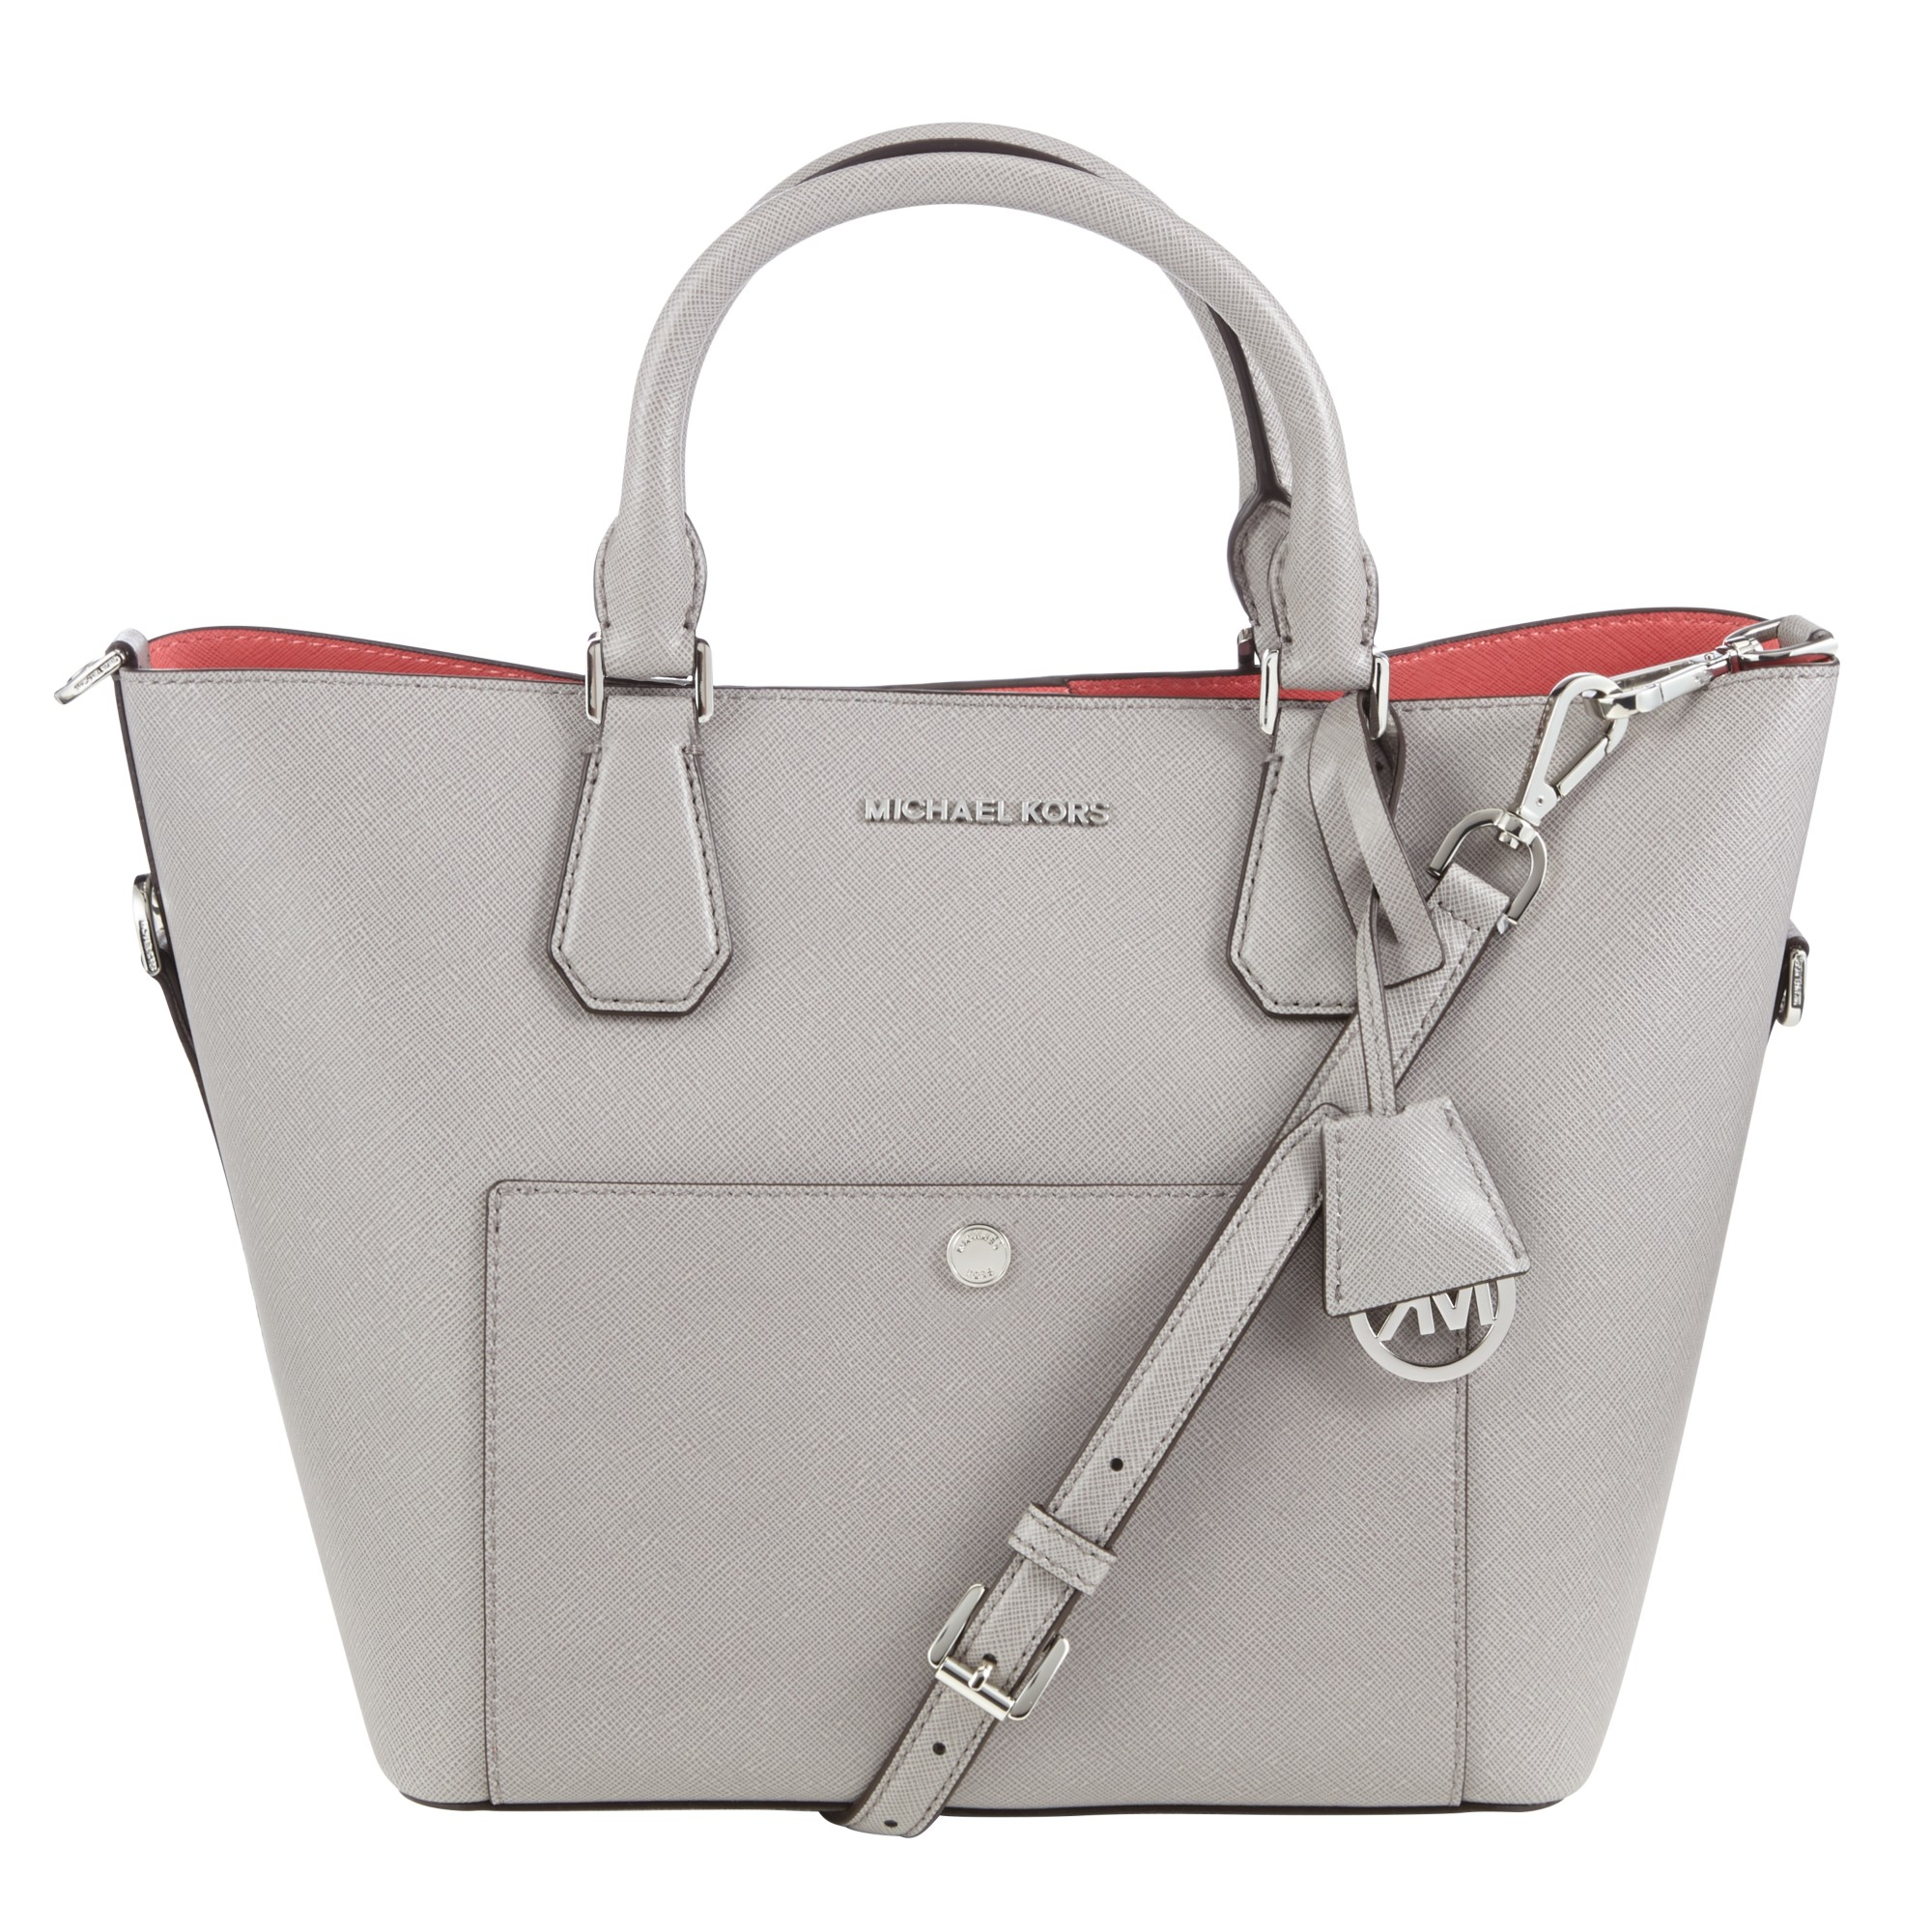 MICHAEL Michael Kors Greenwich Large Grab Bag in Gray - Lyst aee8826f8f629